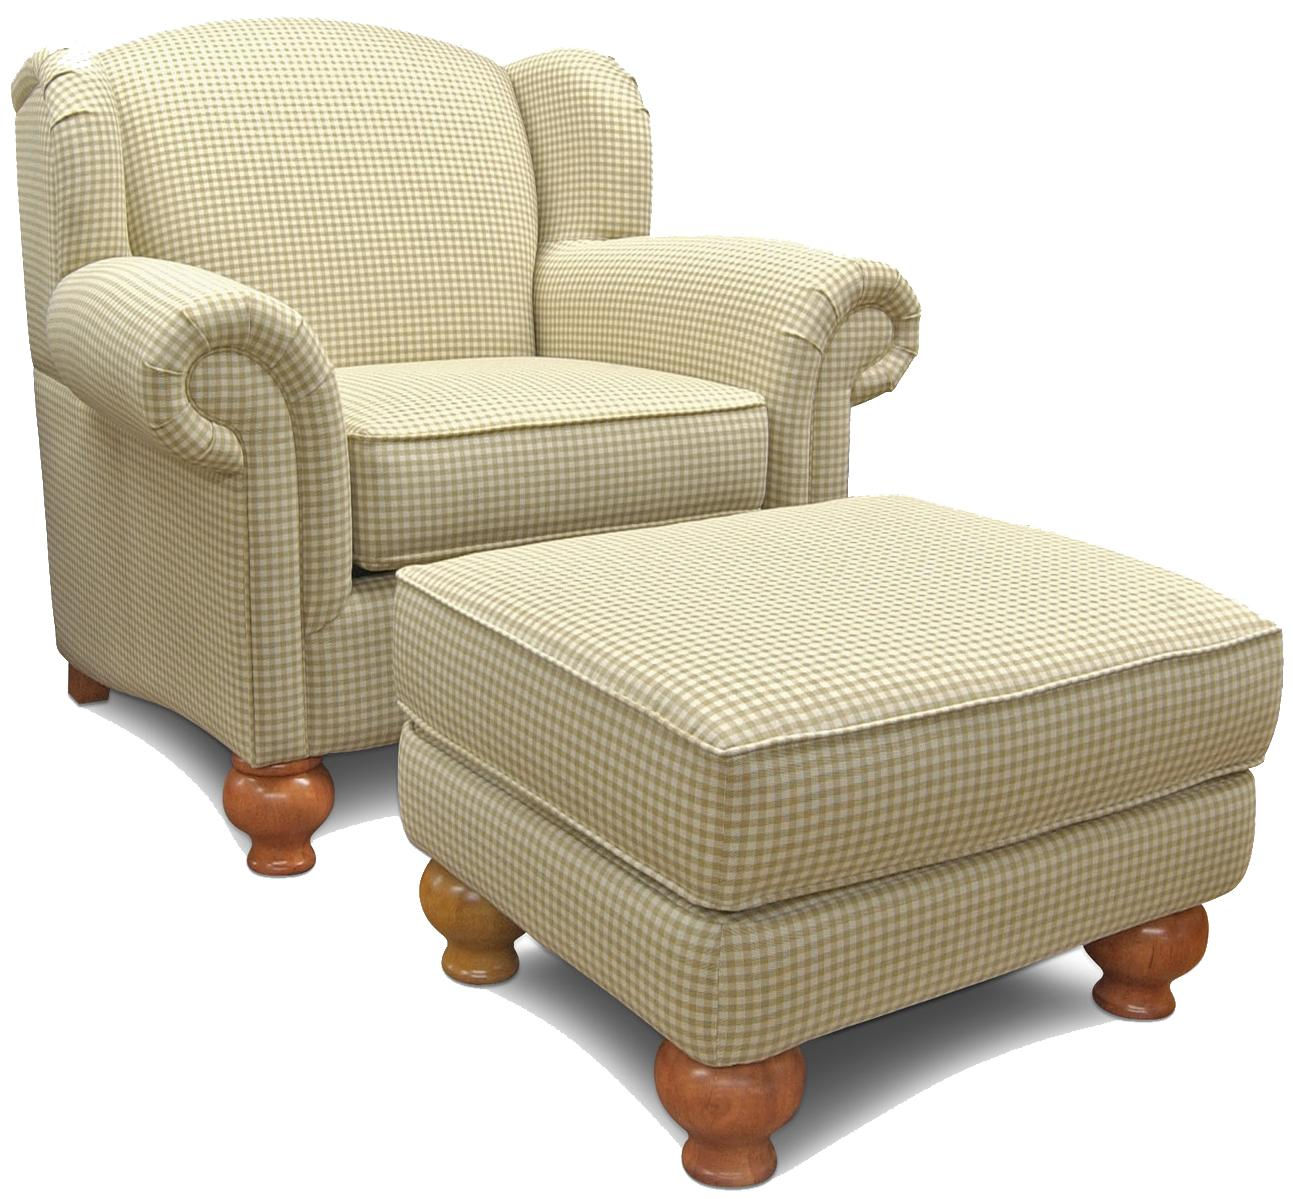 England Fairview Chair and Ottoman - Item Number: 3004+7